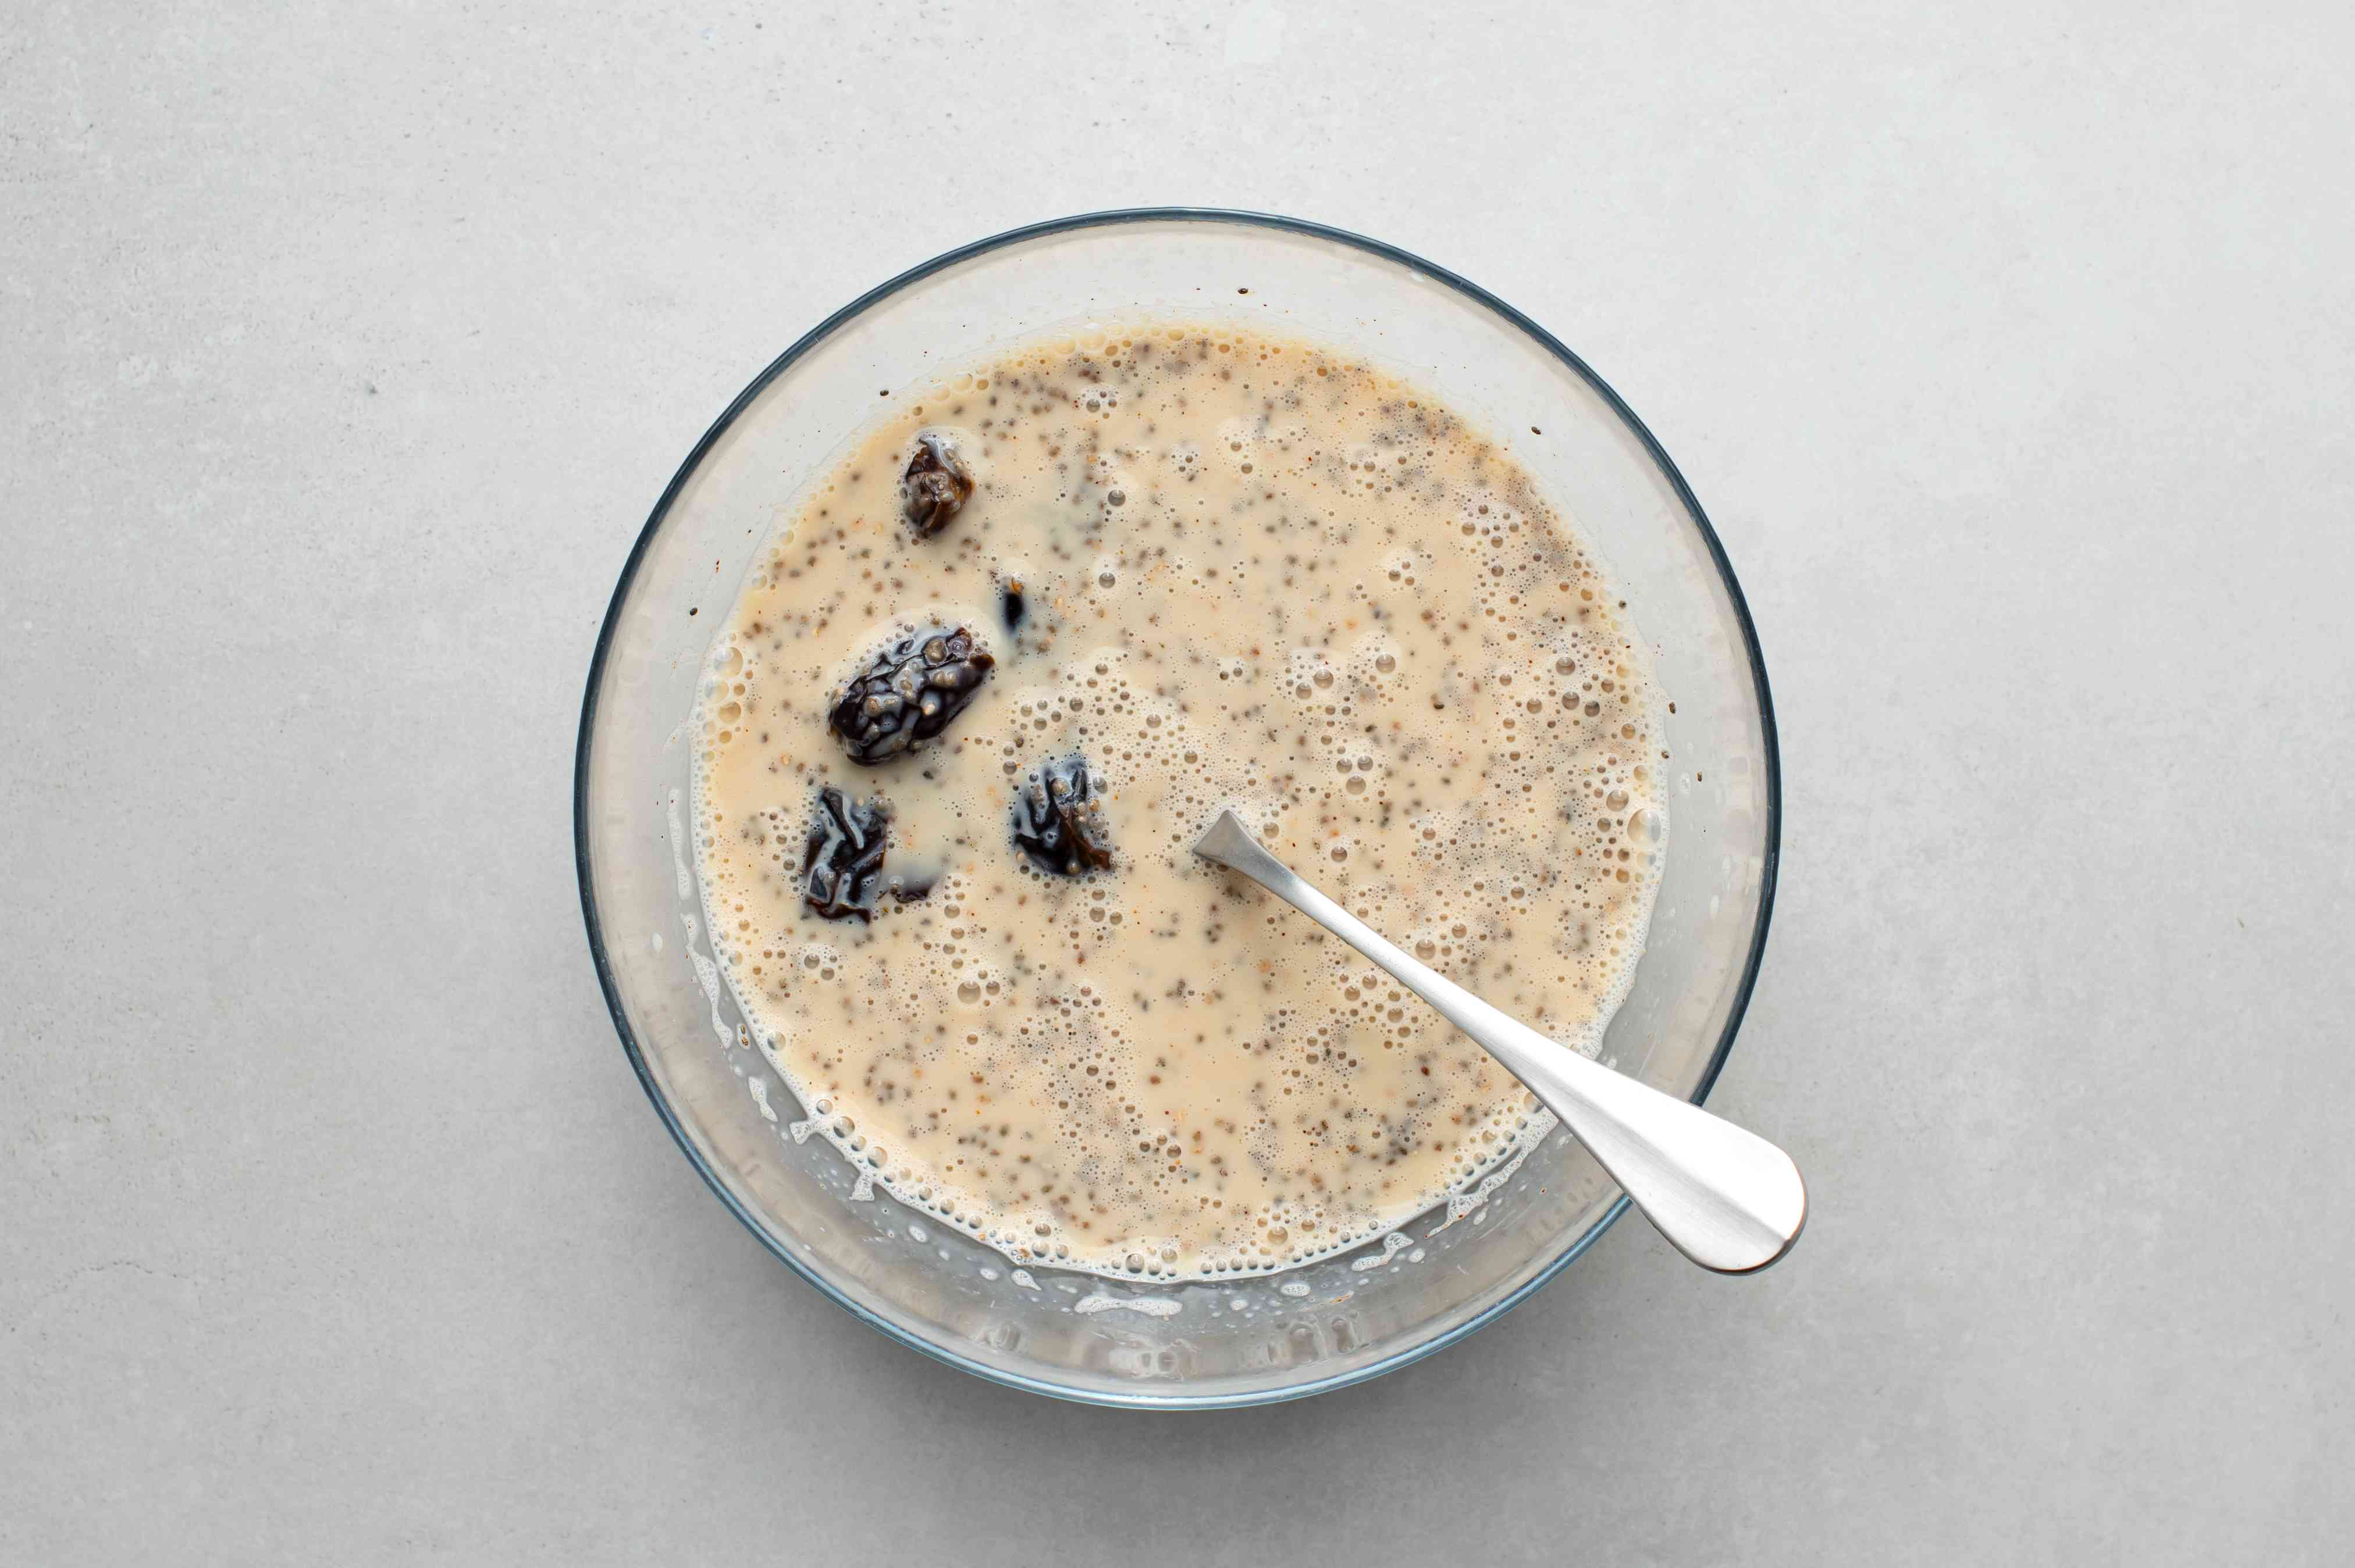 Stir the quartered dates into the chia seed mixture